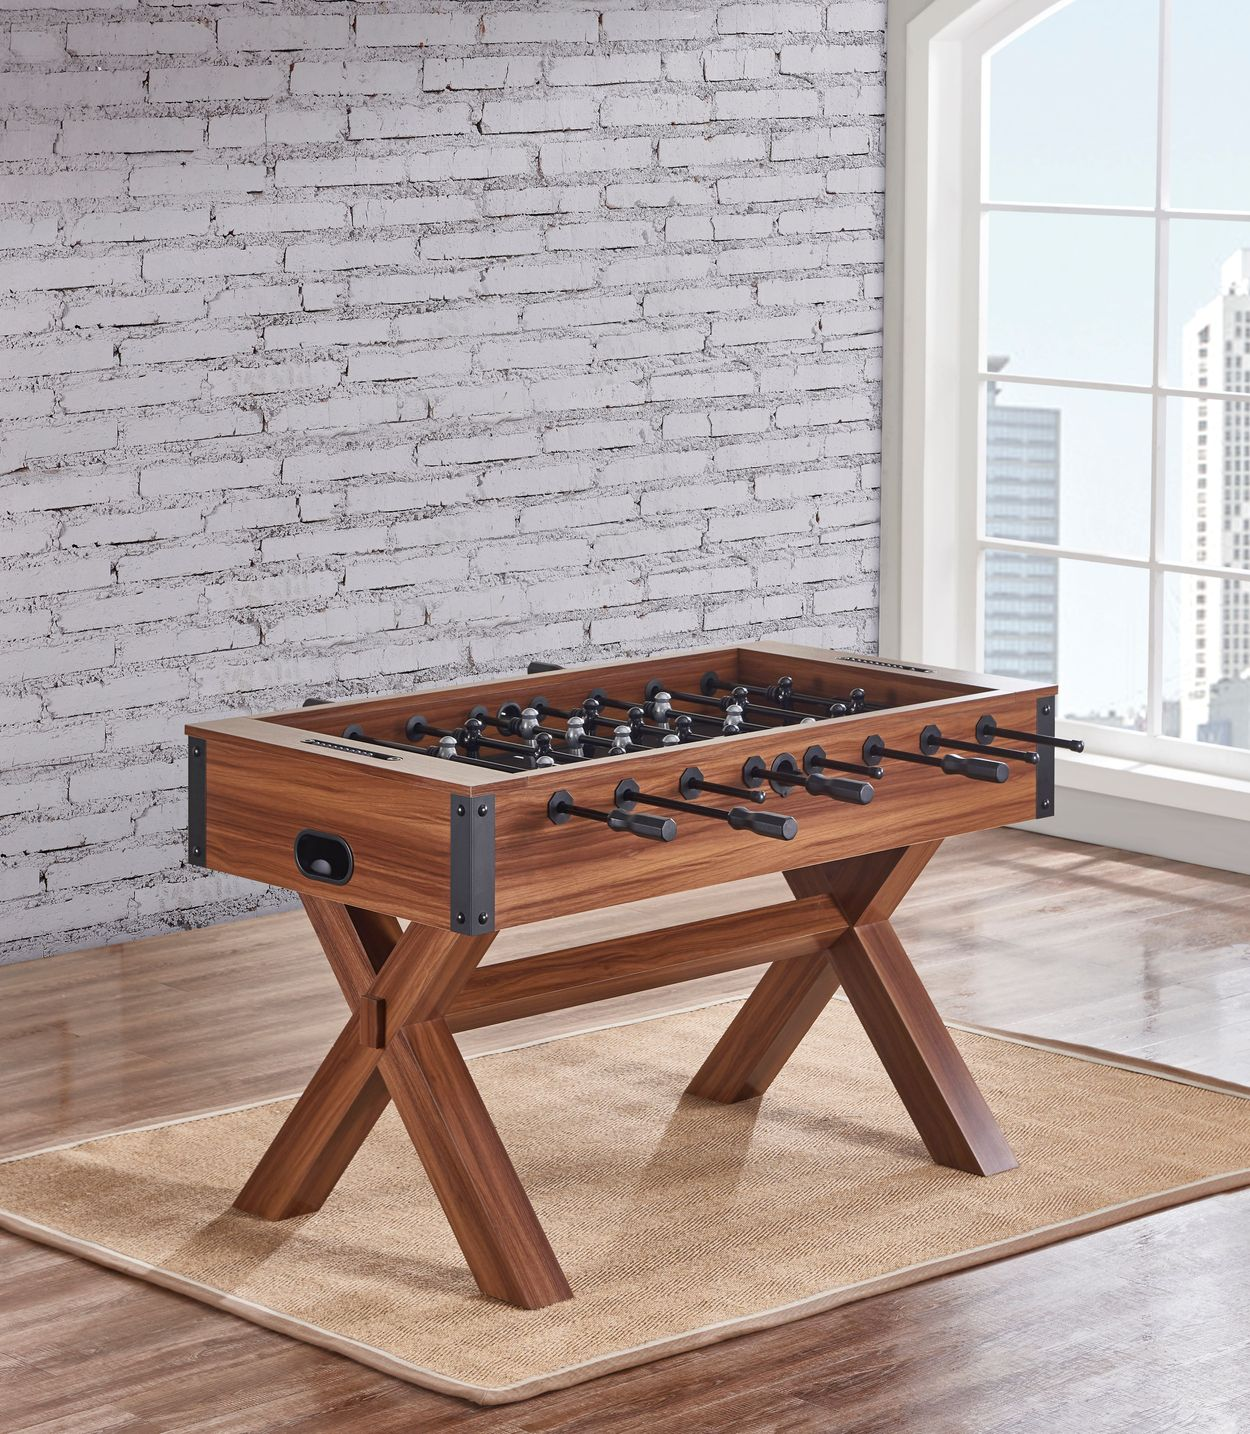 Angeled view of Soccer Style Playfield